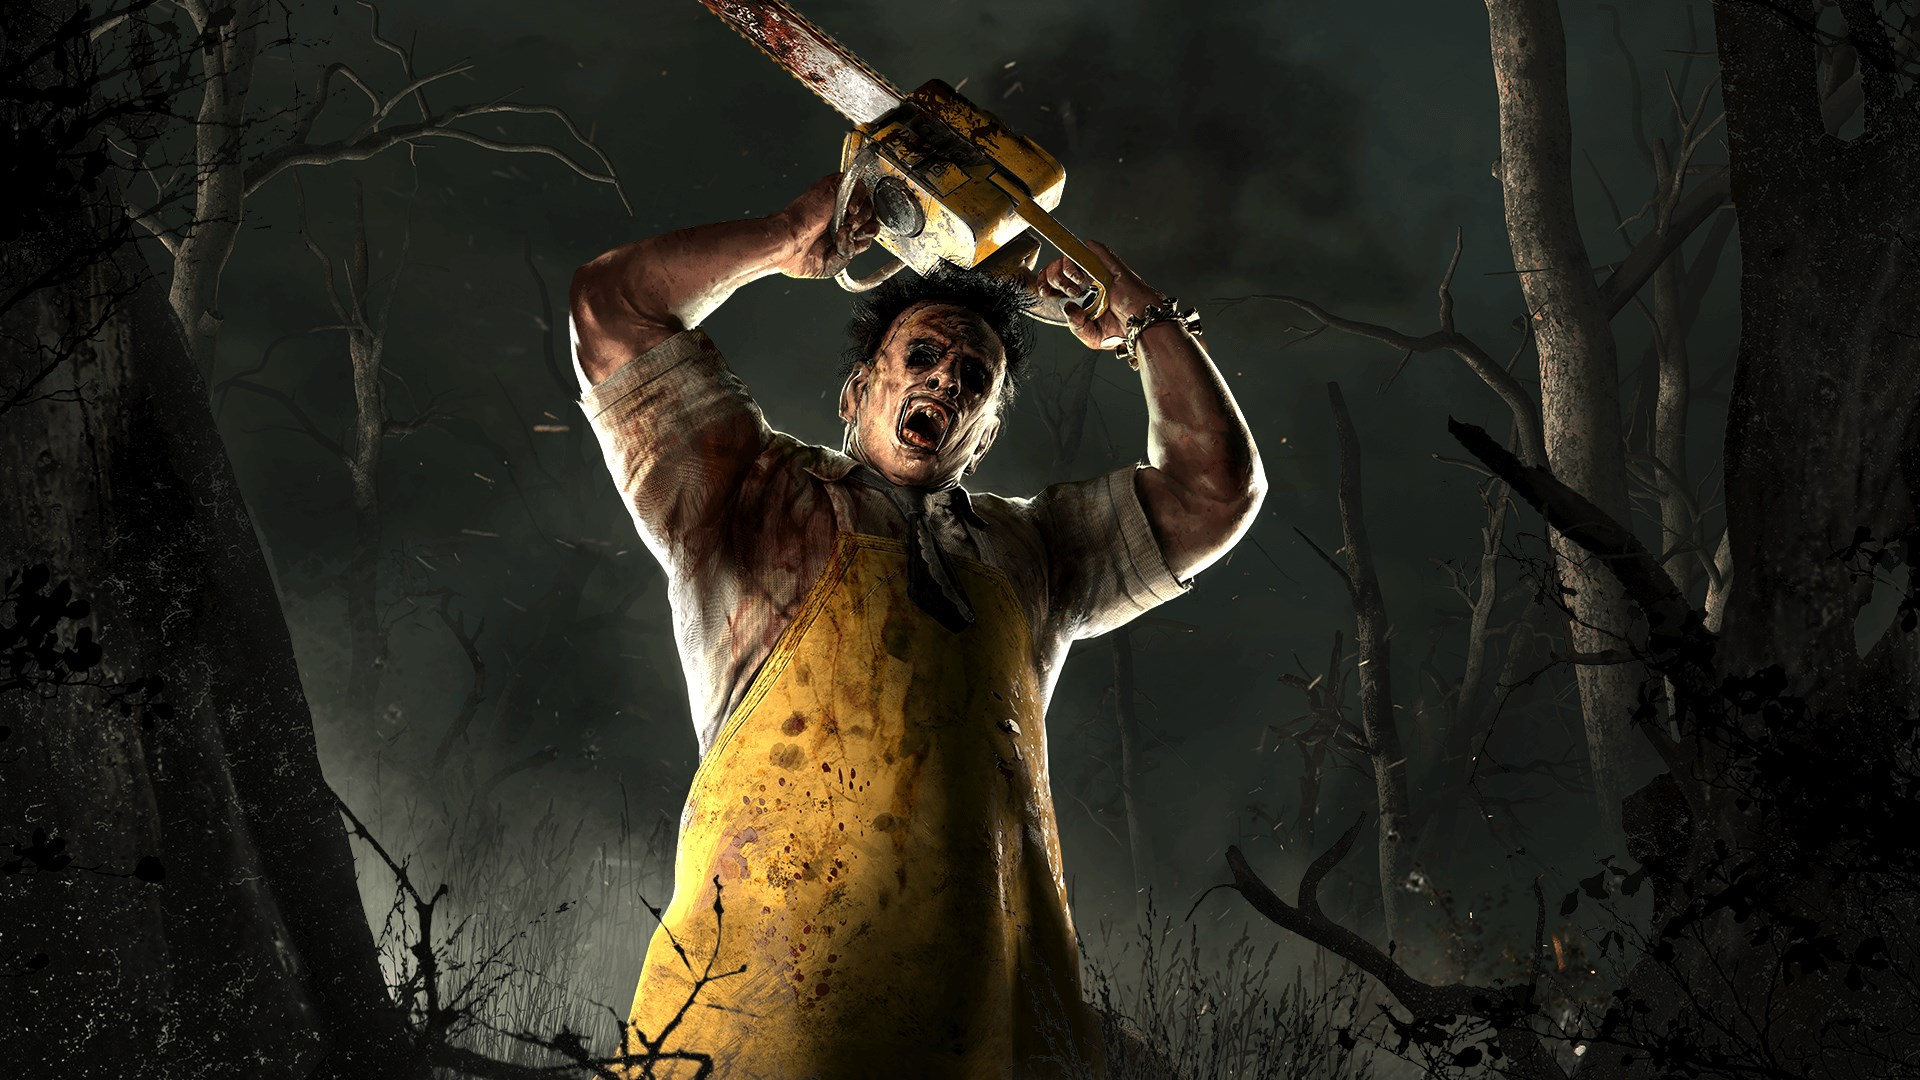 Dead by Daylight: Leatherface™